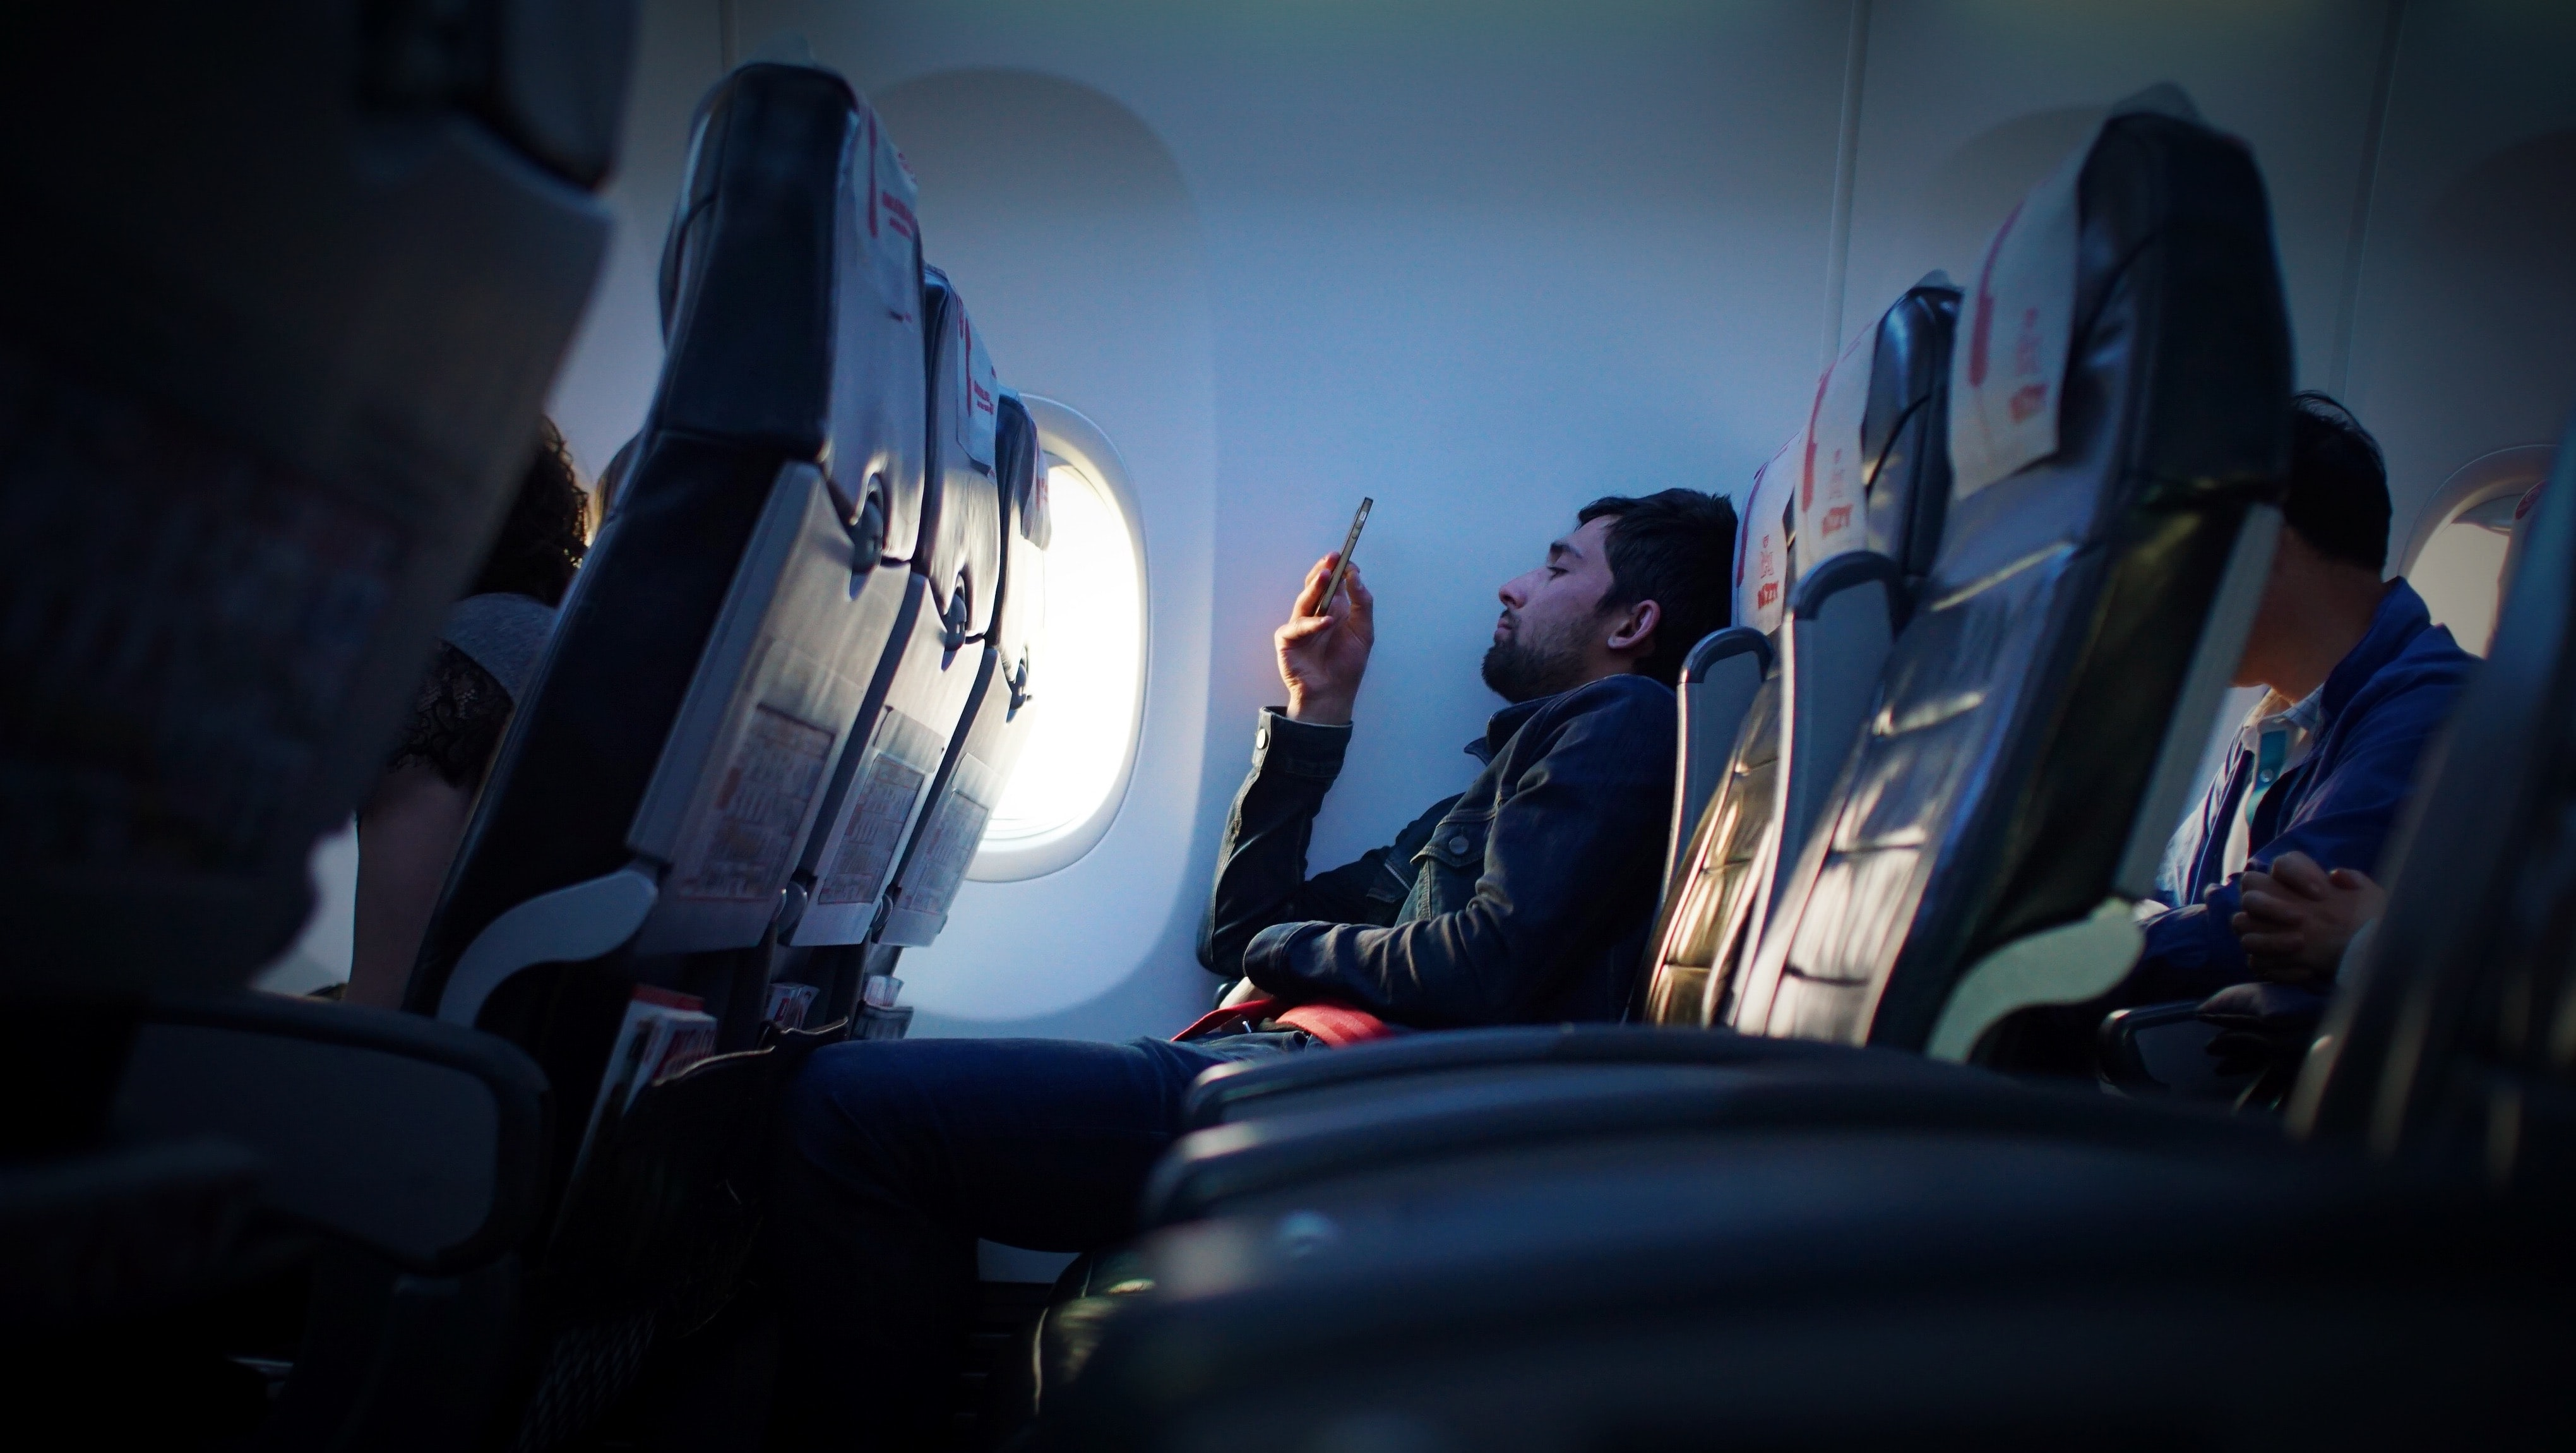 A bearded man using his phone on an airplane